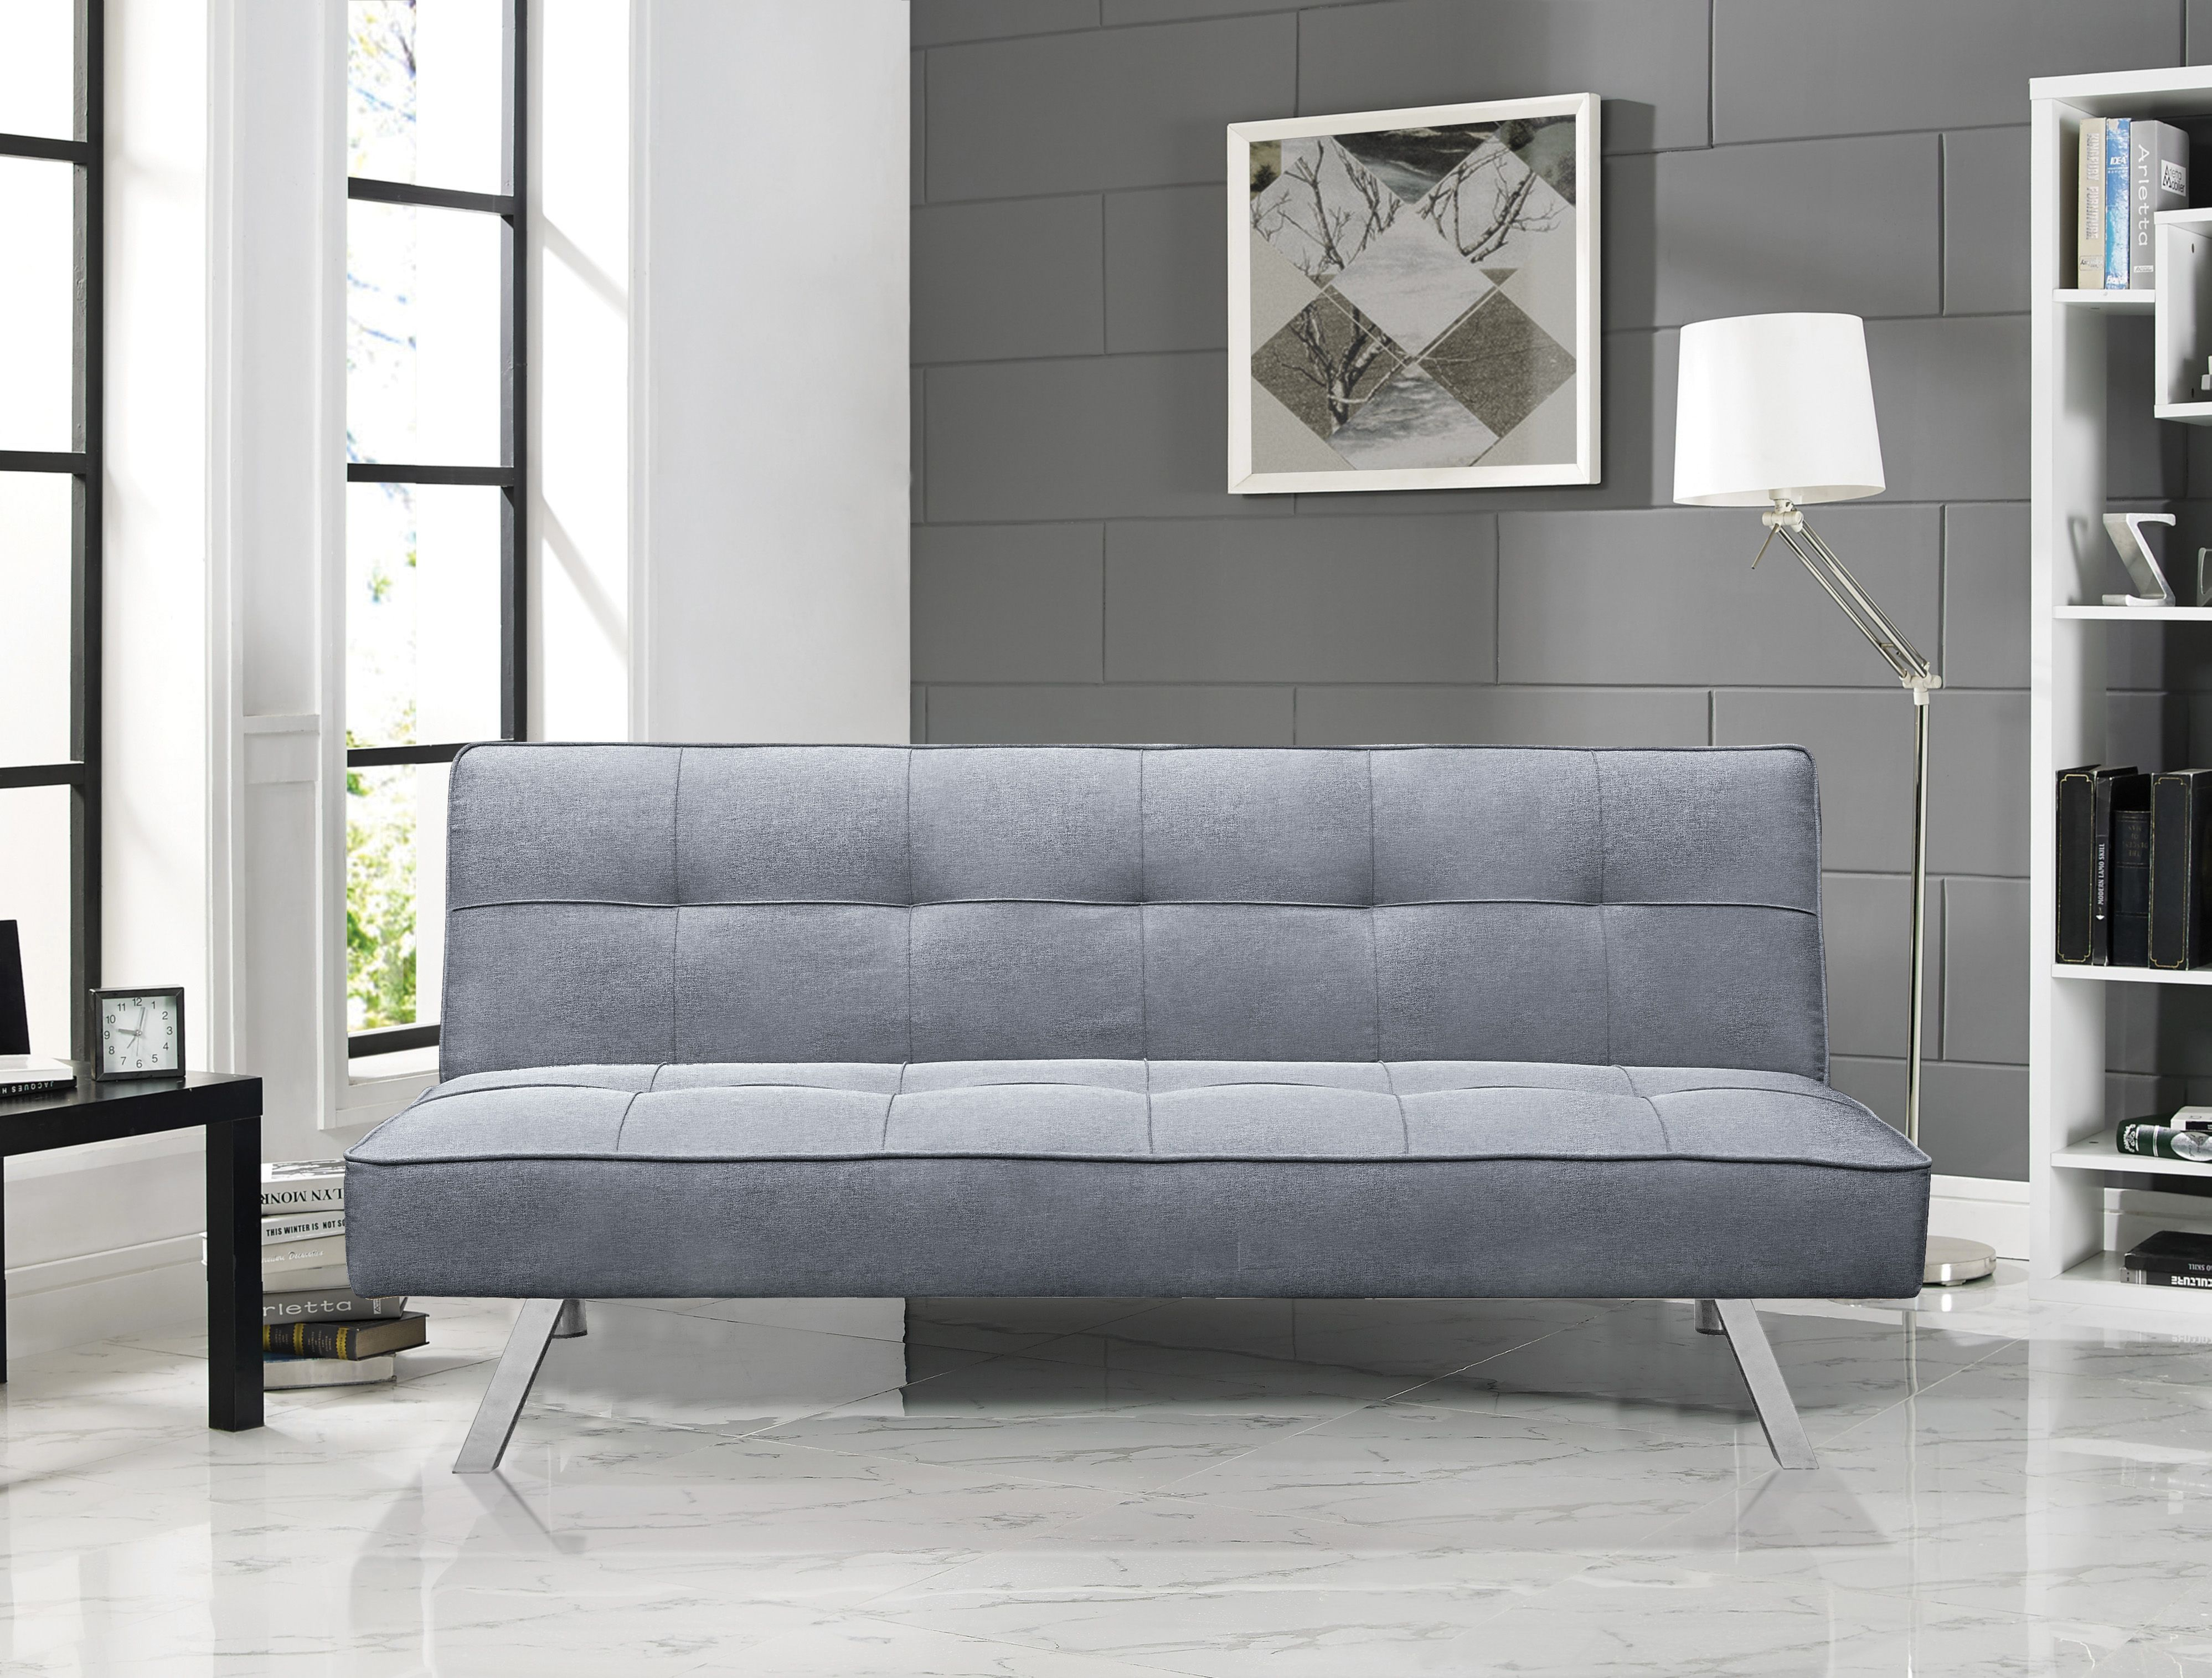 10 Most Comfortable Futons To Buy 2021 Best Futons To Buy Online